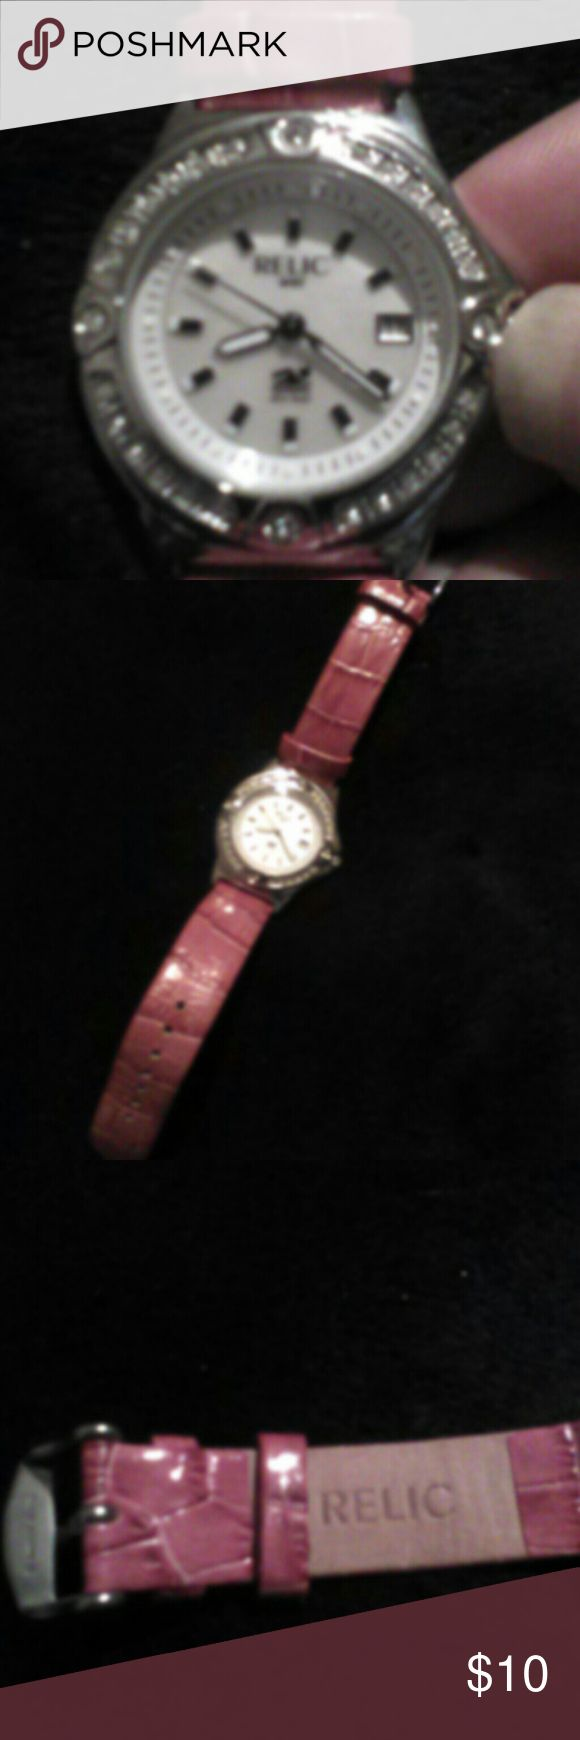 Relic watch Relic watch with rhinestones. Pink band. Never worn. Needs new battery Relic Jewelry Bracelets